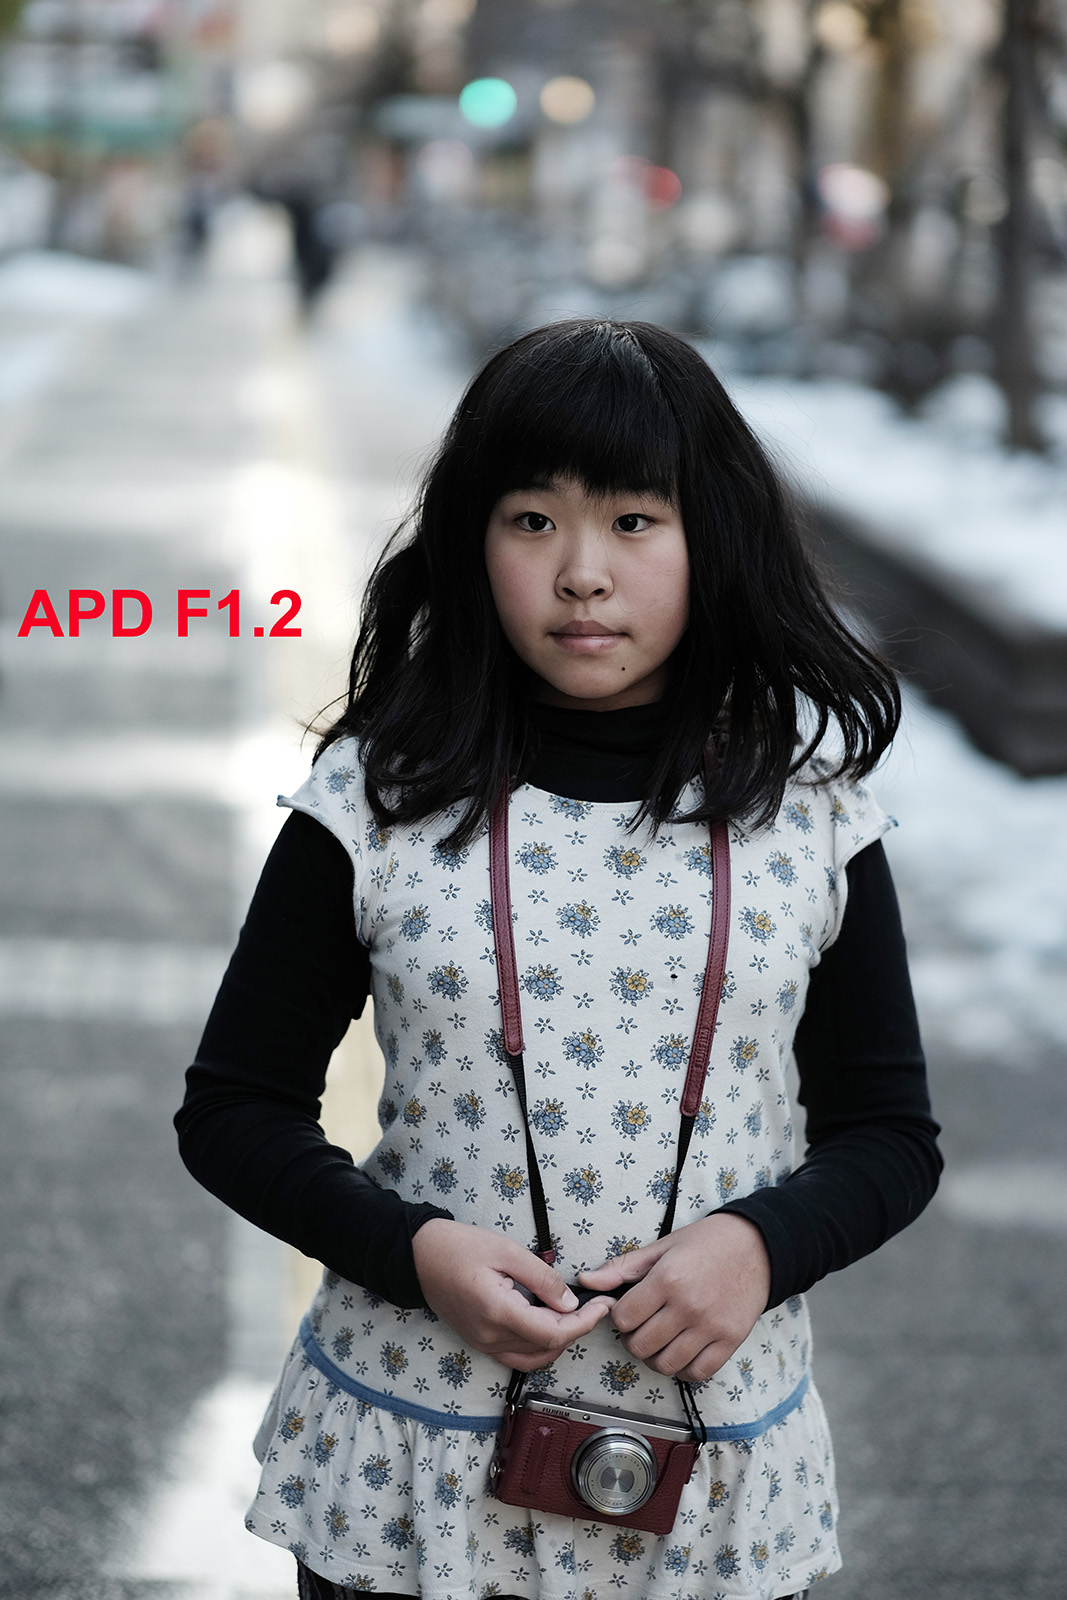 Aapd12_2